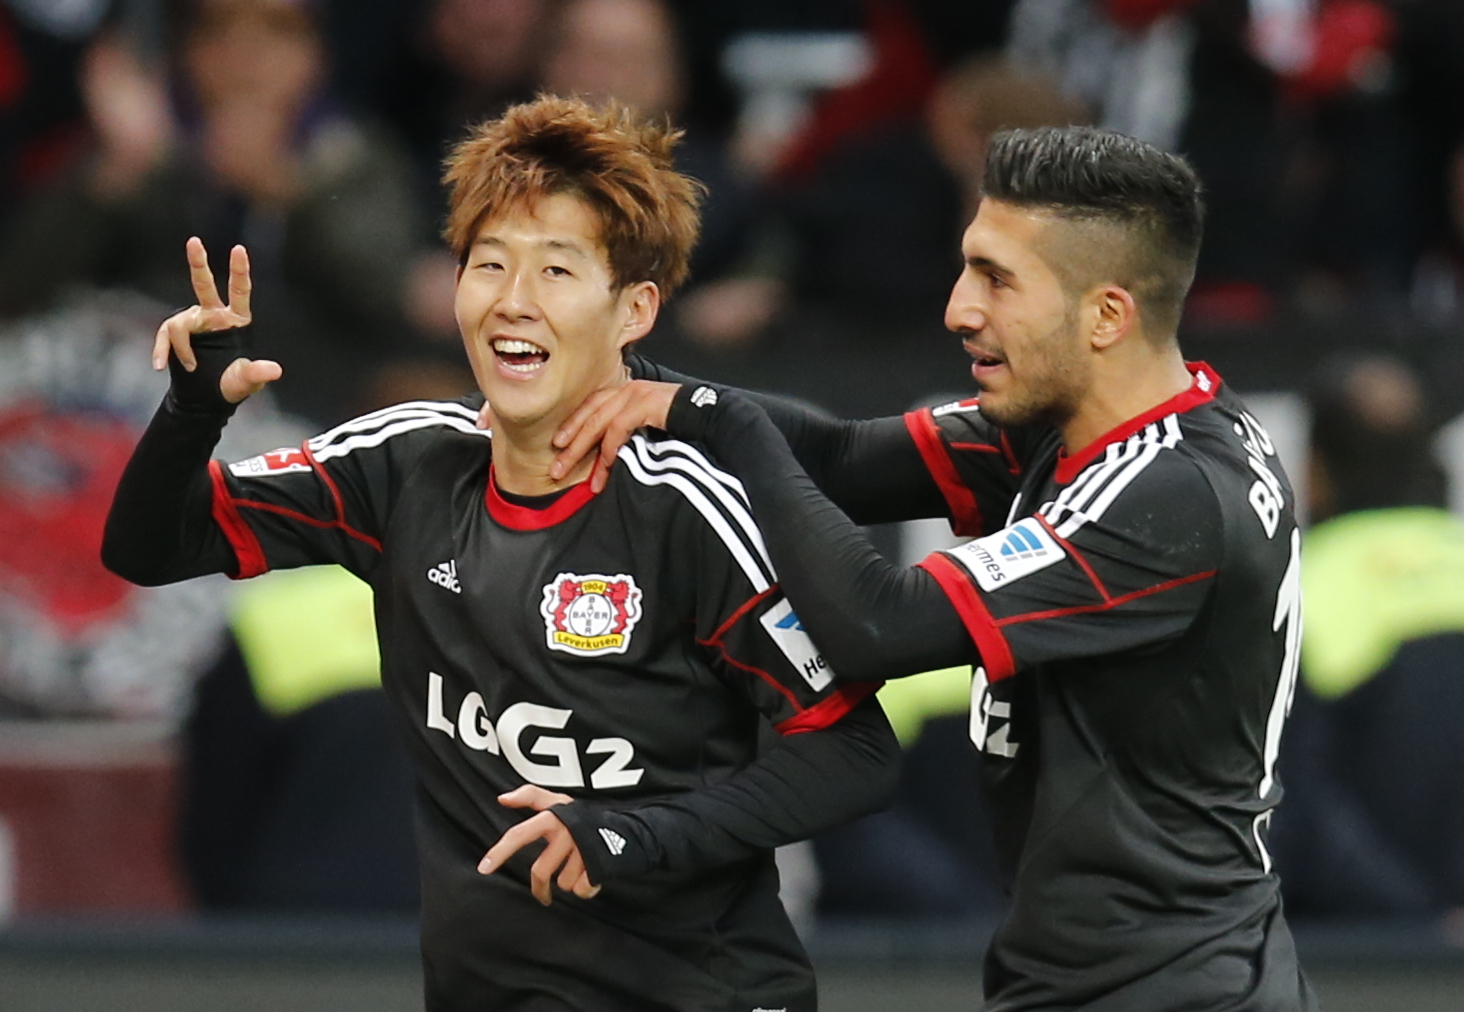 Leverkusen's Son Heung-min  of South Korea, left, and Leverkusen's Emre Can celebrate after scoring during the German first division Bundesliga soccer match between Bayer Leverkusen and Hamburger  SV in Leverkusen, Germany, Saturday, Nov. 9, 2013. (AP Photo/Frank Augstein